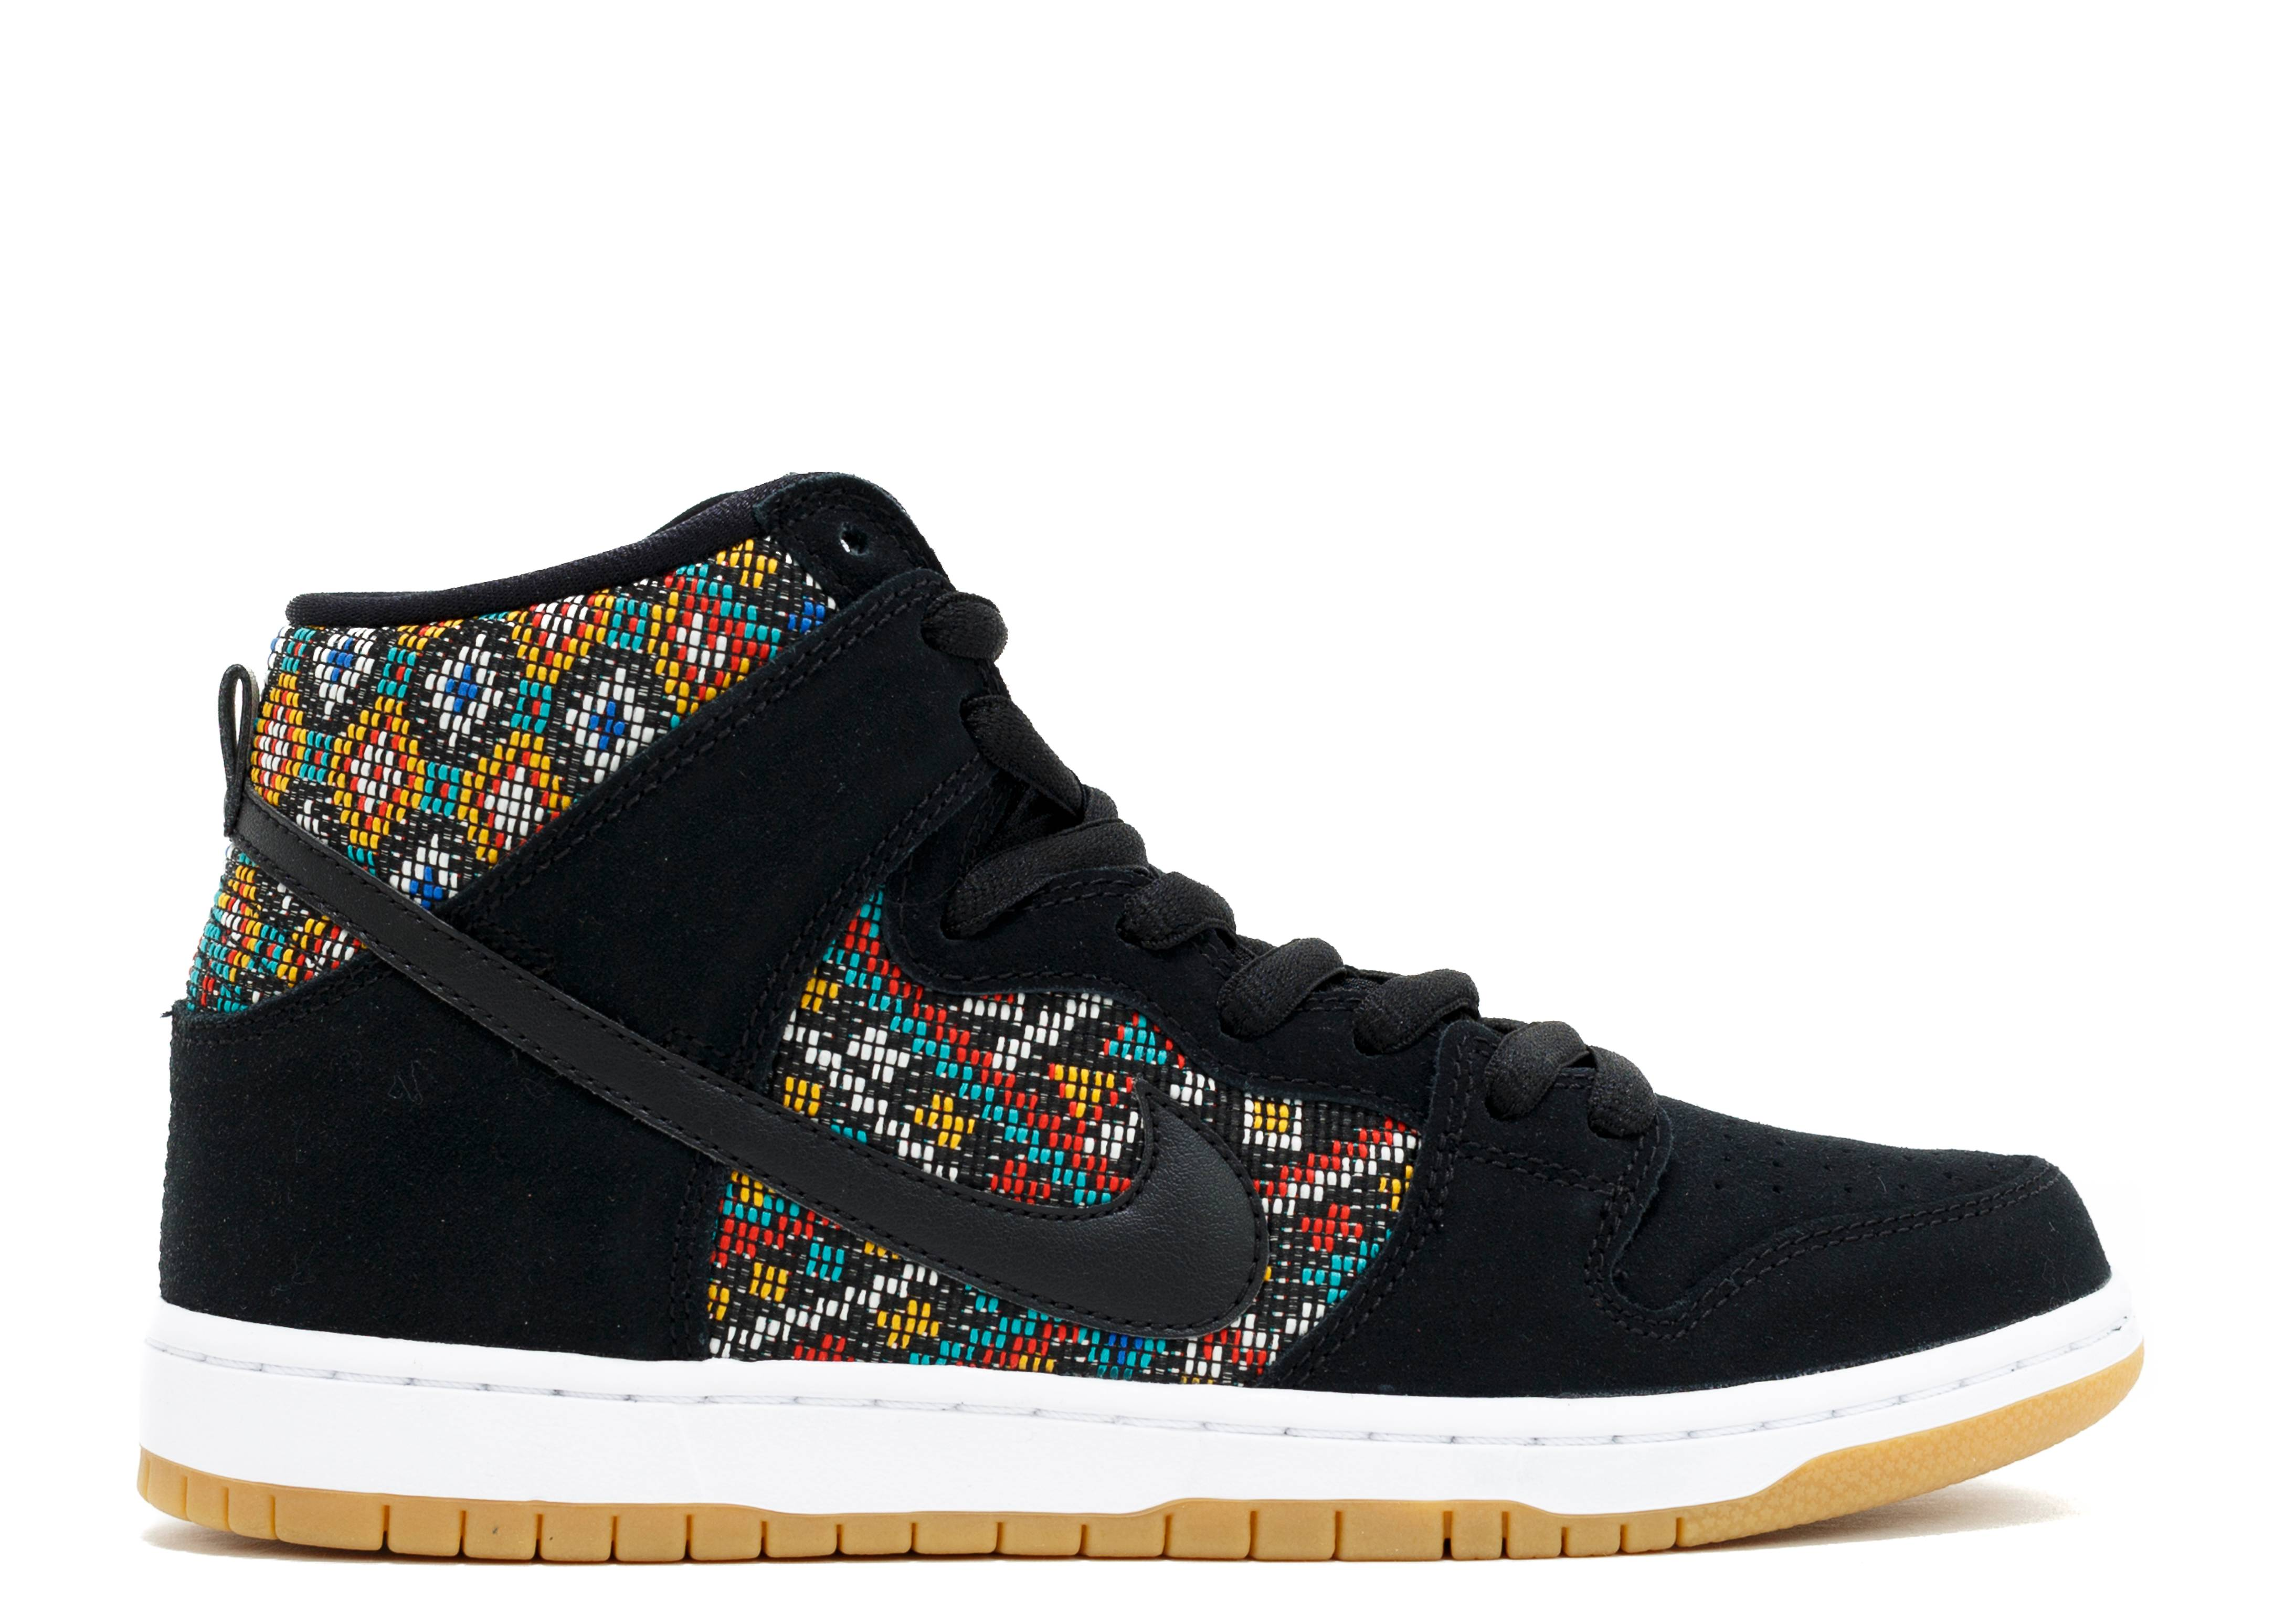 dunk high premium sb aztec geometry nike 313171 030. Black Bedroom Furniture Sets. Home Design Ideas